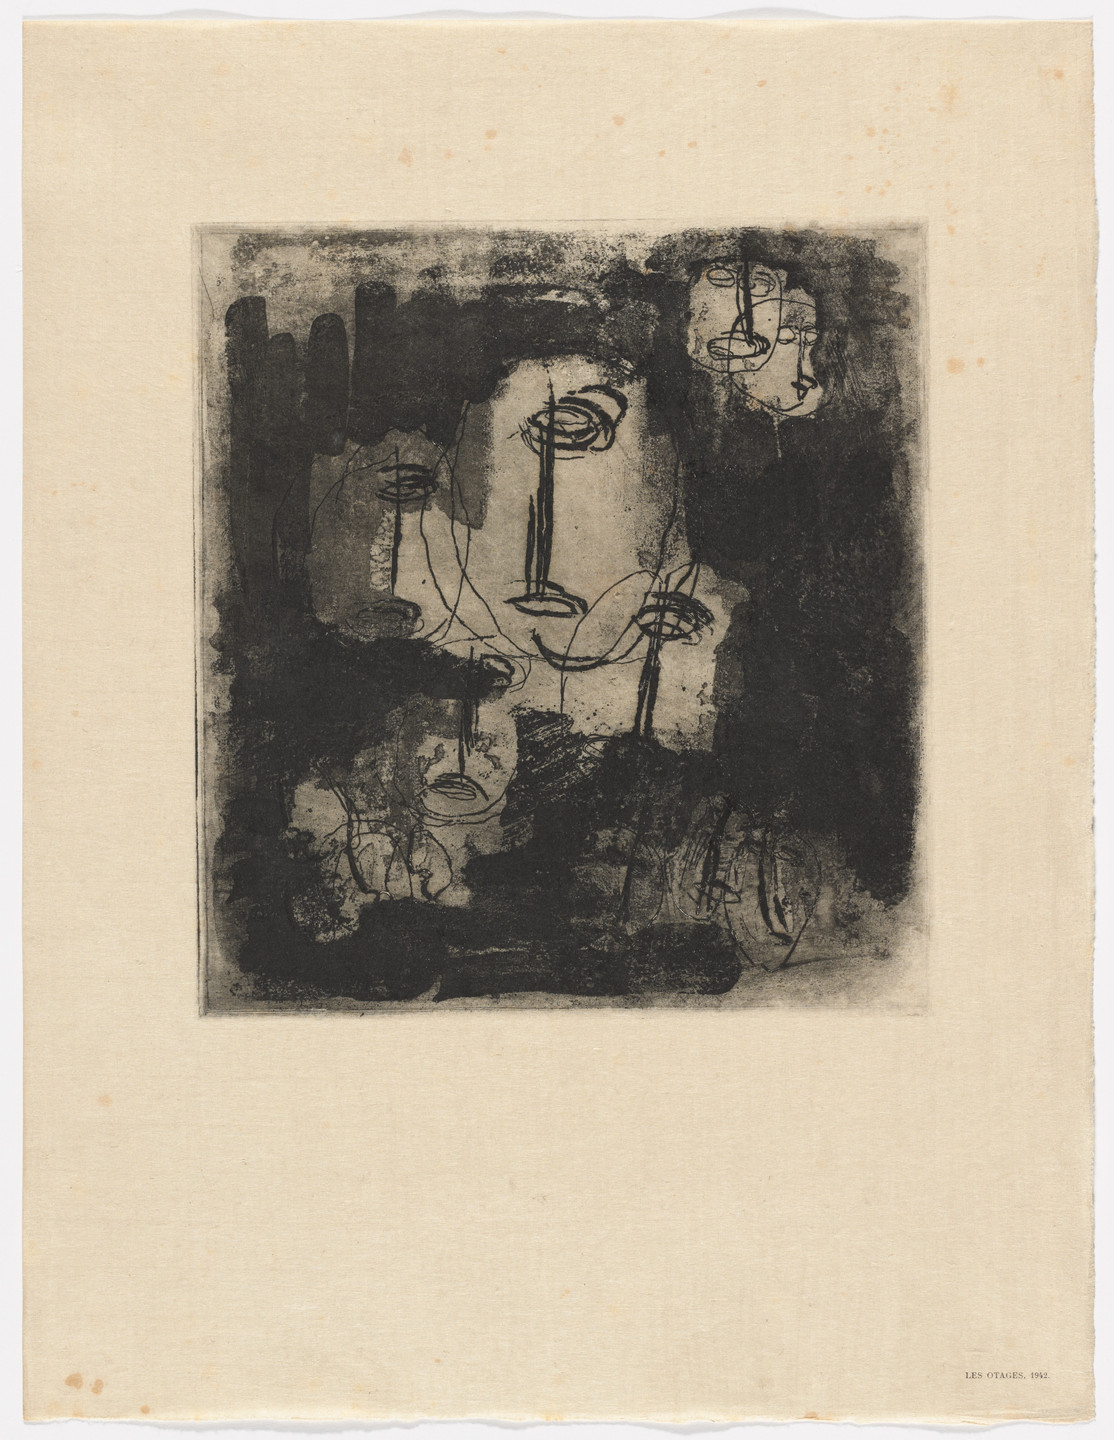 Jean Fautrier. Hostages (Les Otages), 1942 from Fautrier l'enragé. 1949